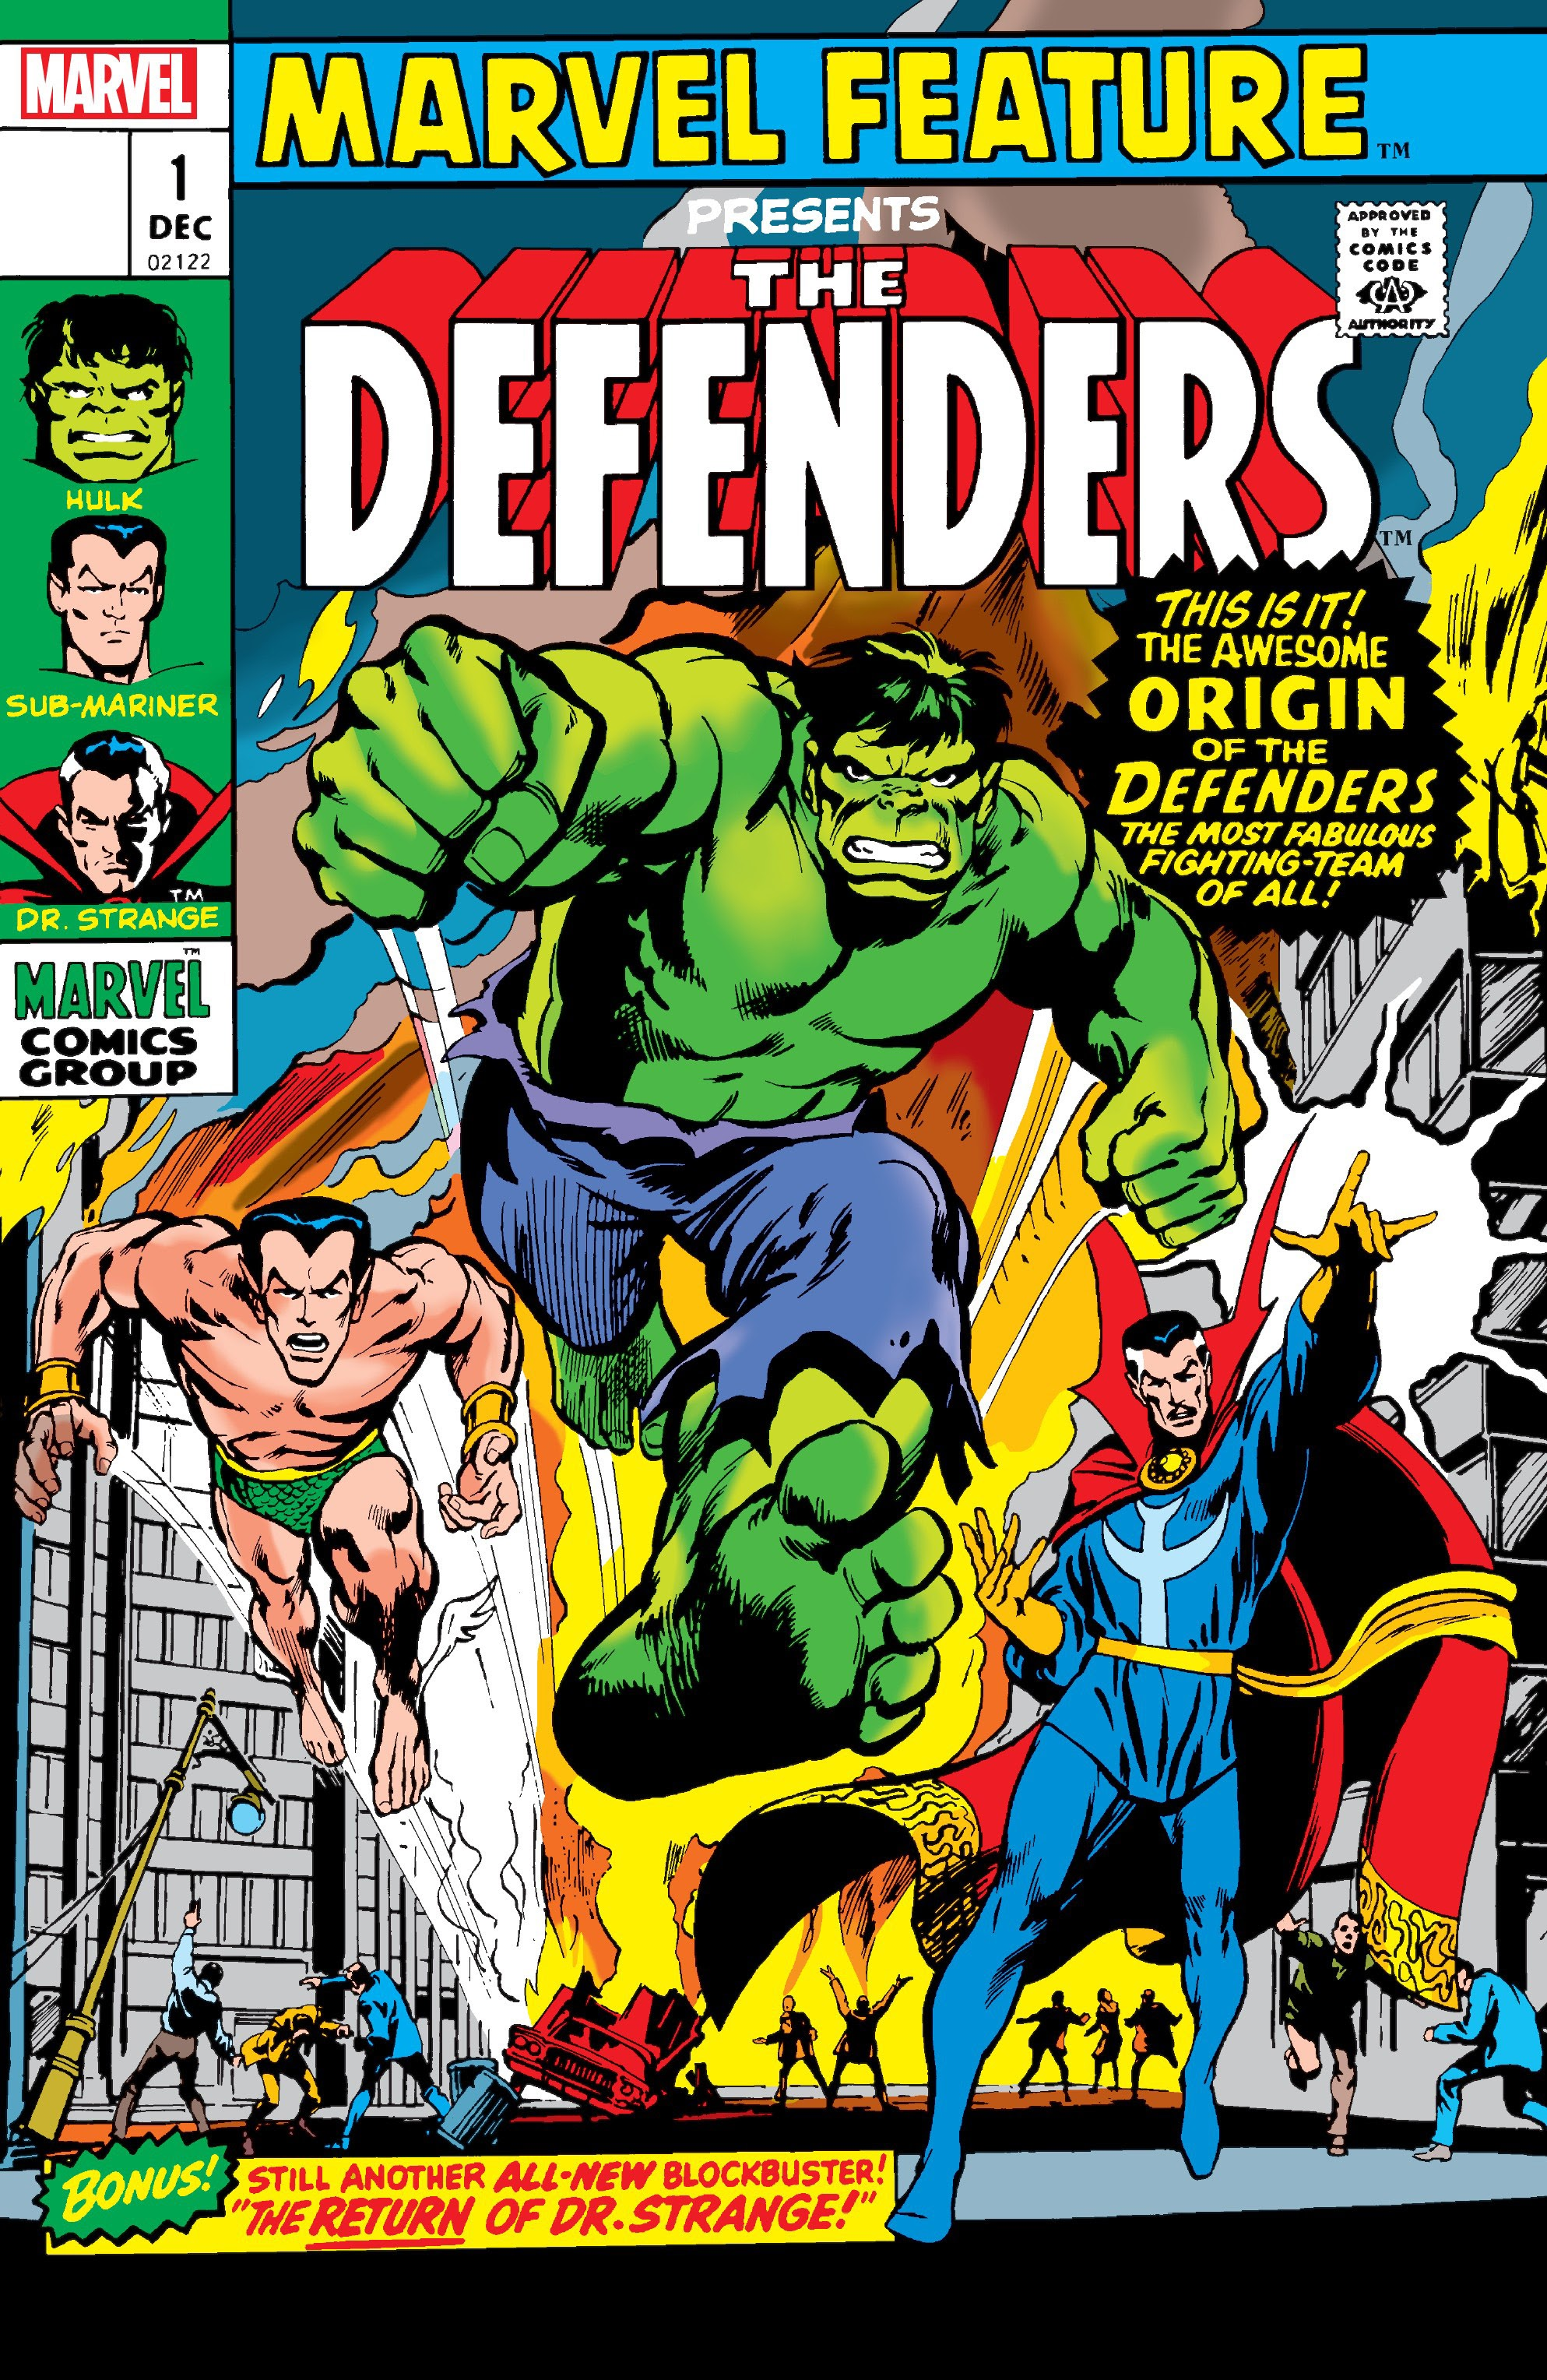 Defenders: Marvel Feature #1: Facsimile Edition issue 1 - Page 1